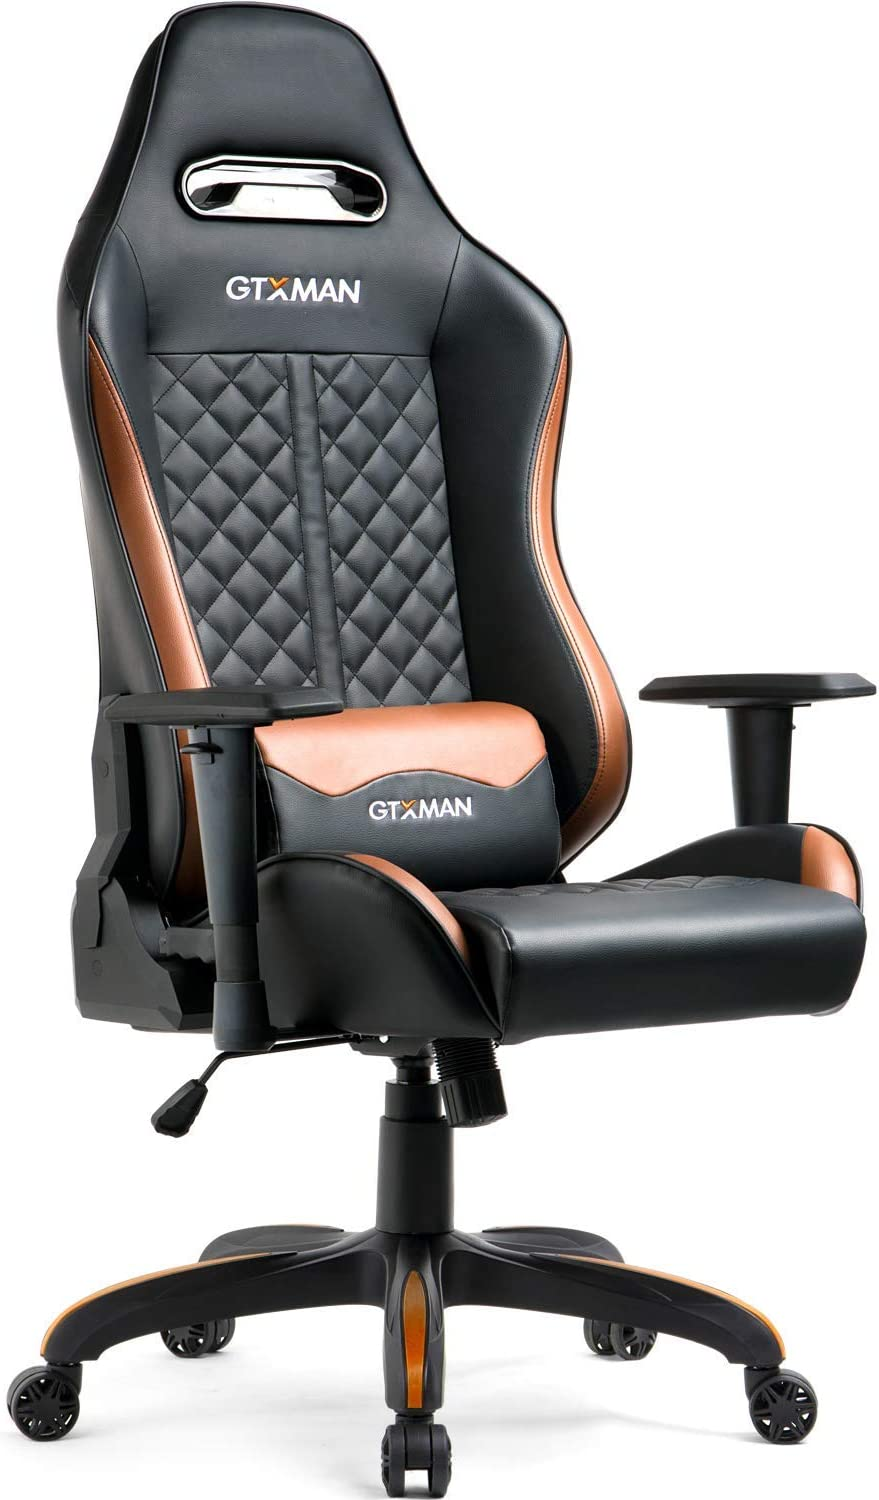 GTracing Premium Series Ergonomic Gaming Chair Adjustable Esports Chair, Large Size Premium PU Leather High-Back Executive Office Chair Brown